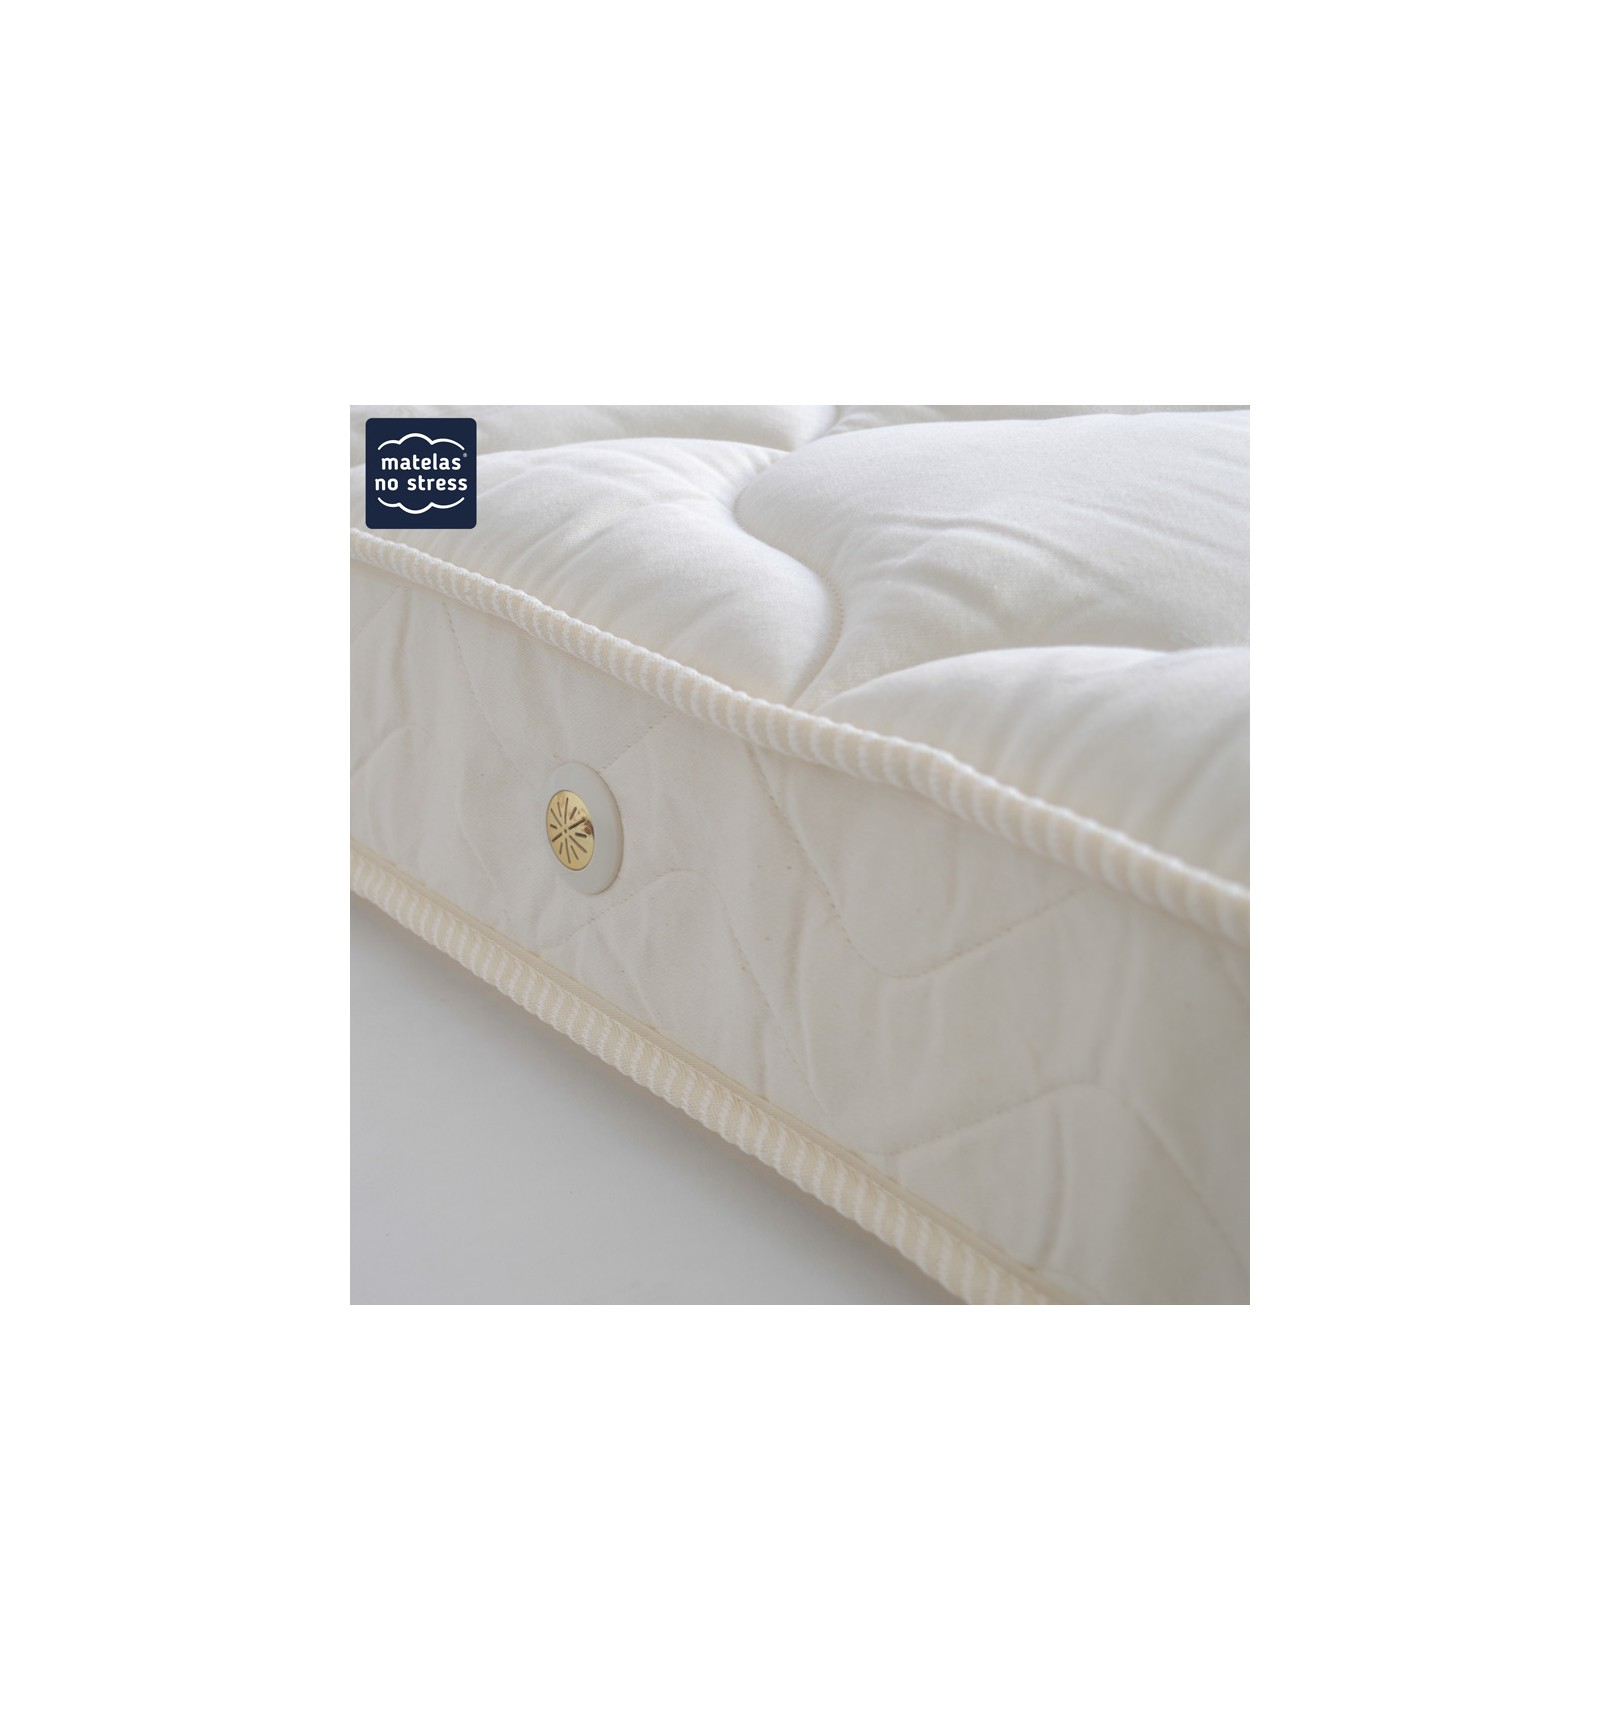 Latex Matratze 140x200 Matelas 140x200 Latex Matelas 180x200 En Latex Pas Cher